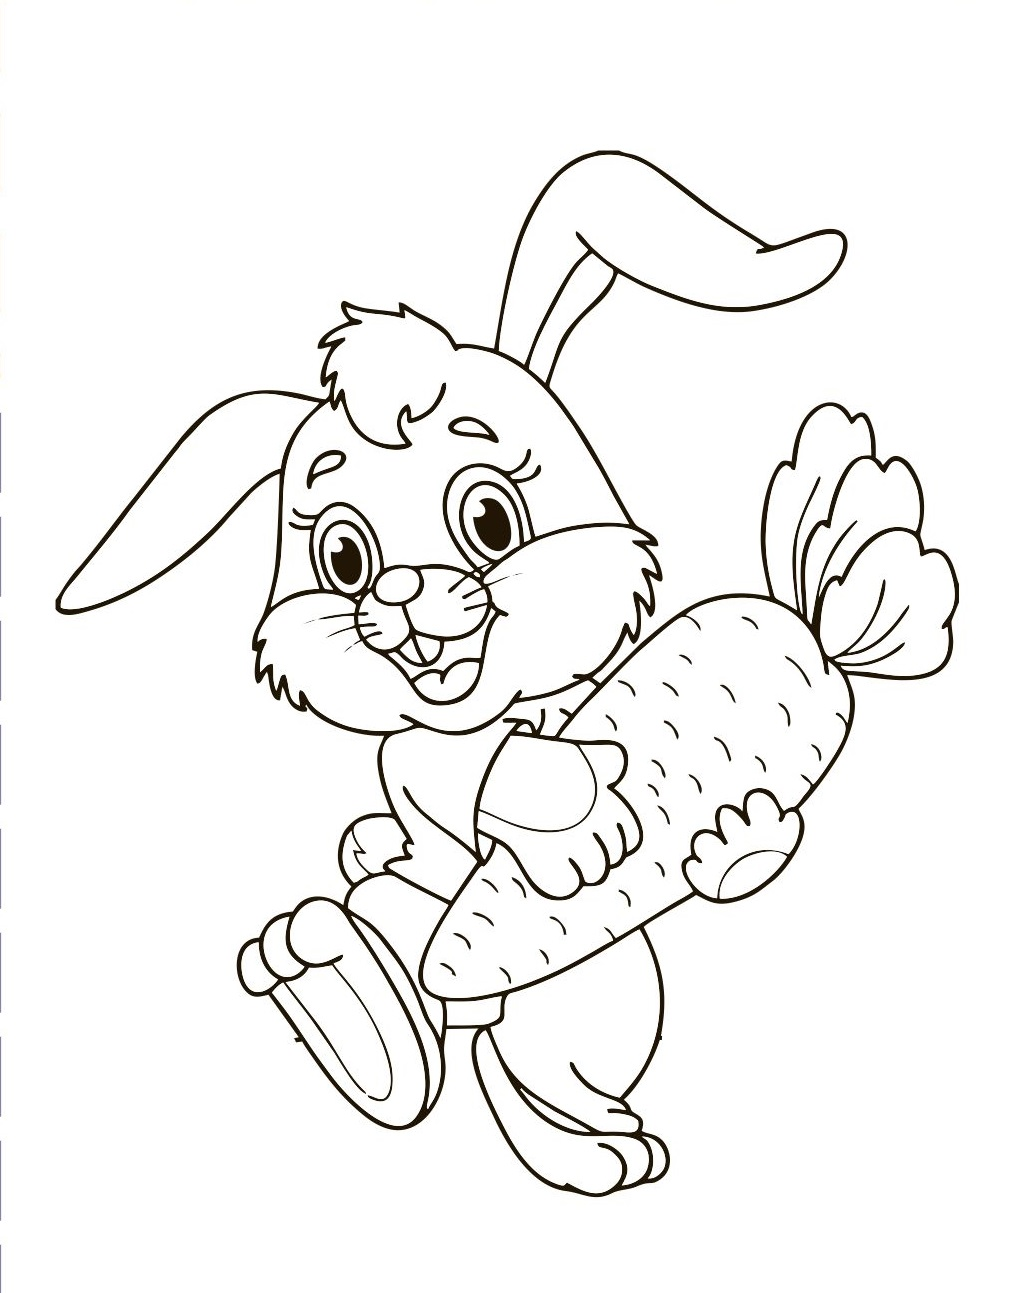 Easter bunny pages to color for kids